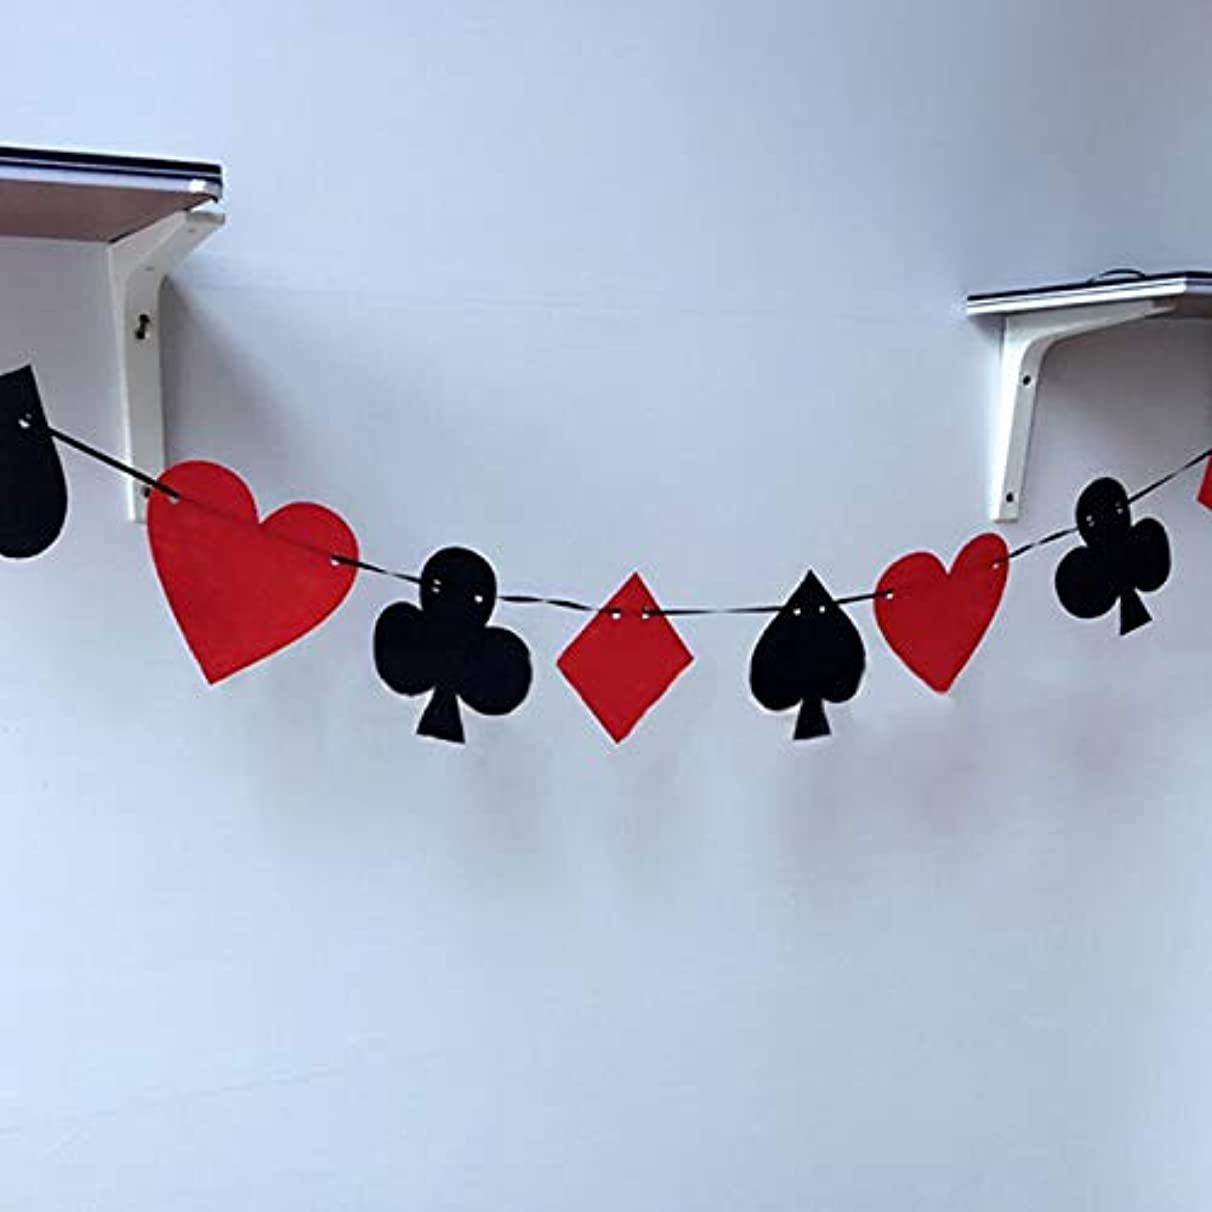 Banners - Poker Banner Playing Cards Bunting Flag Creative Casino Party Felt Sign Birthday Hanging Decoration - Streamers Banners Streamers Confetti Birthday Poker Petersham Ribbon Decor Party